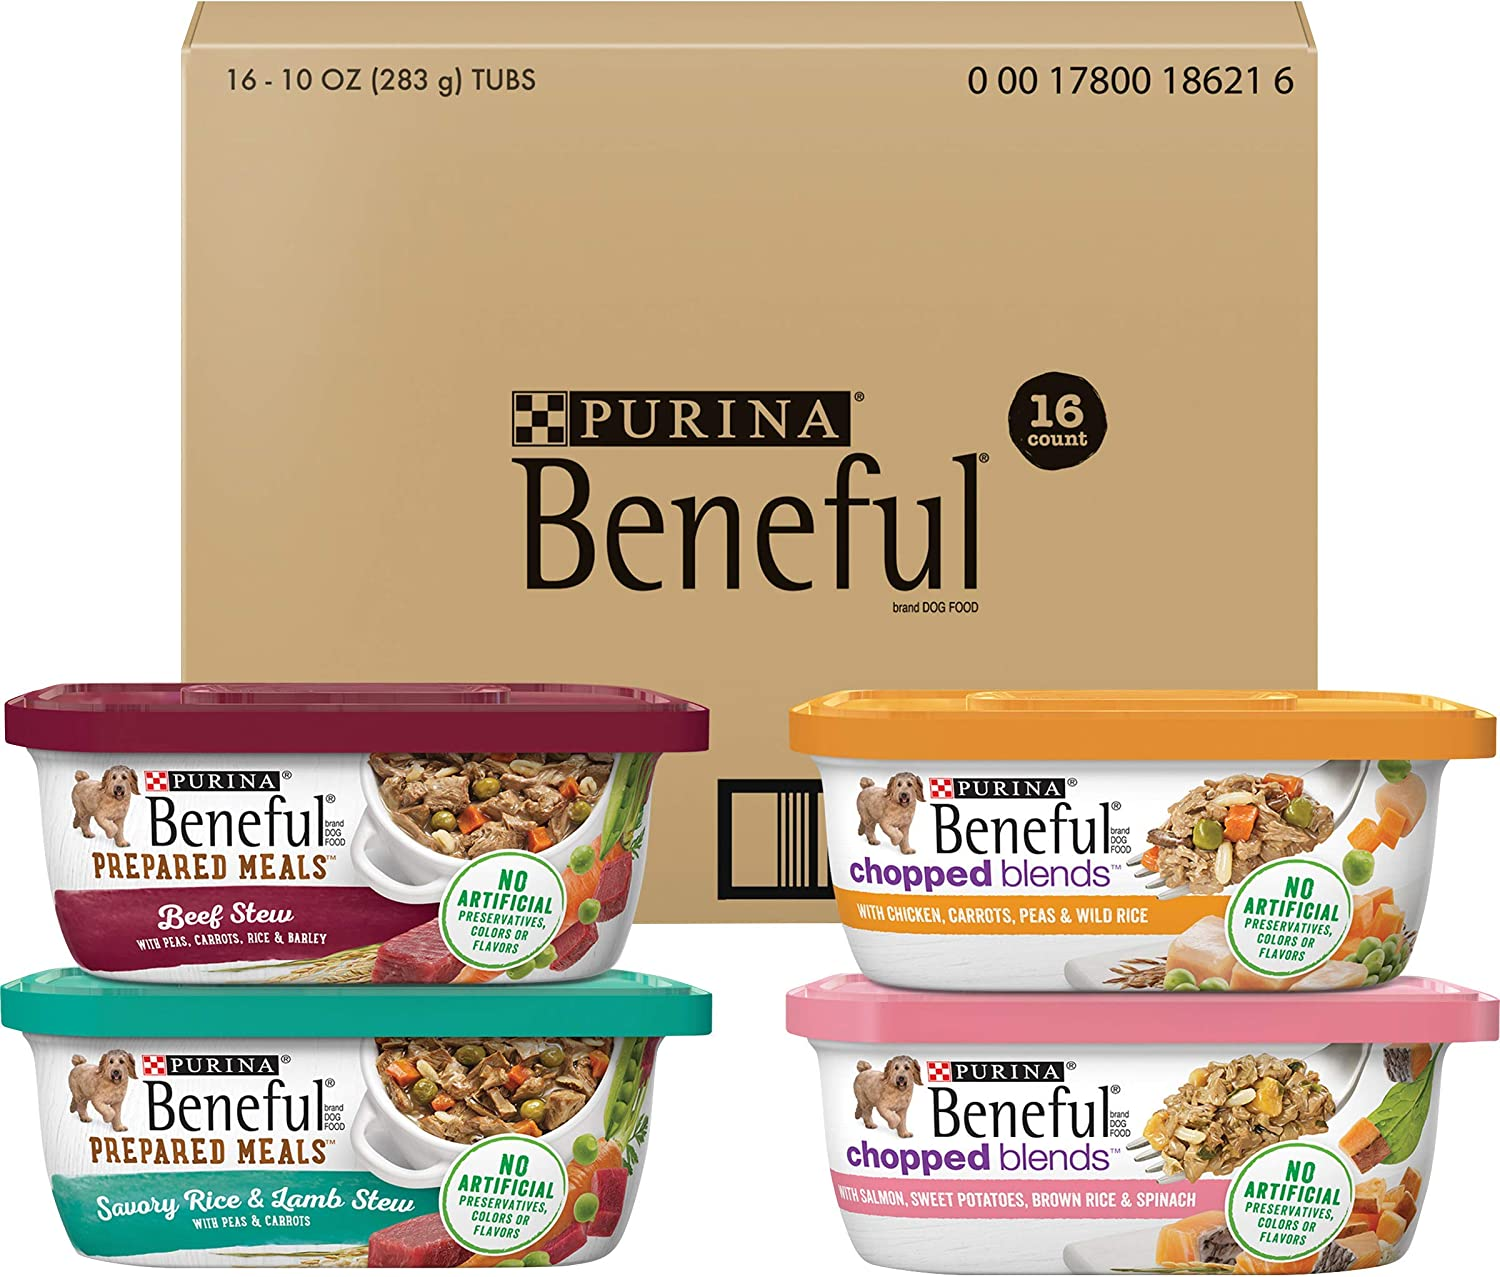 Purina 1 year warranty Beneful Wet Dog Pack Food Selling and selling Variety